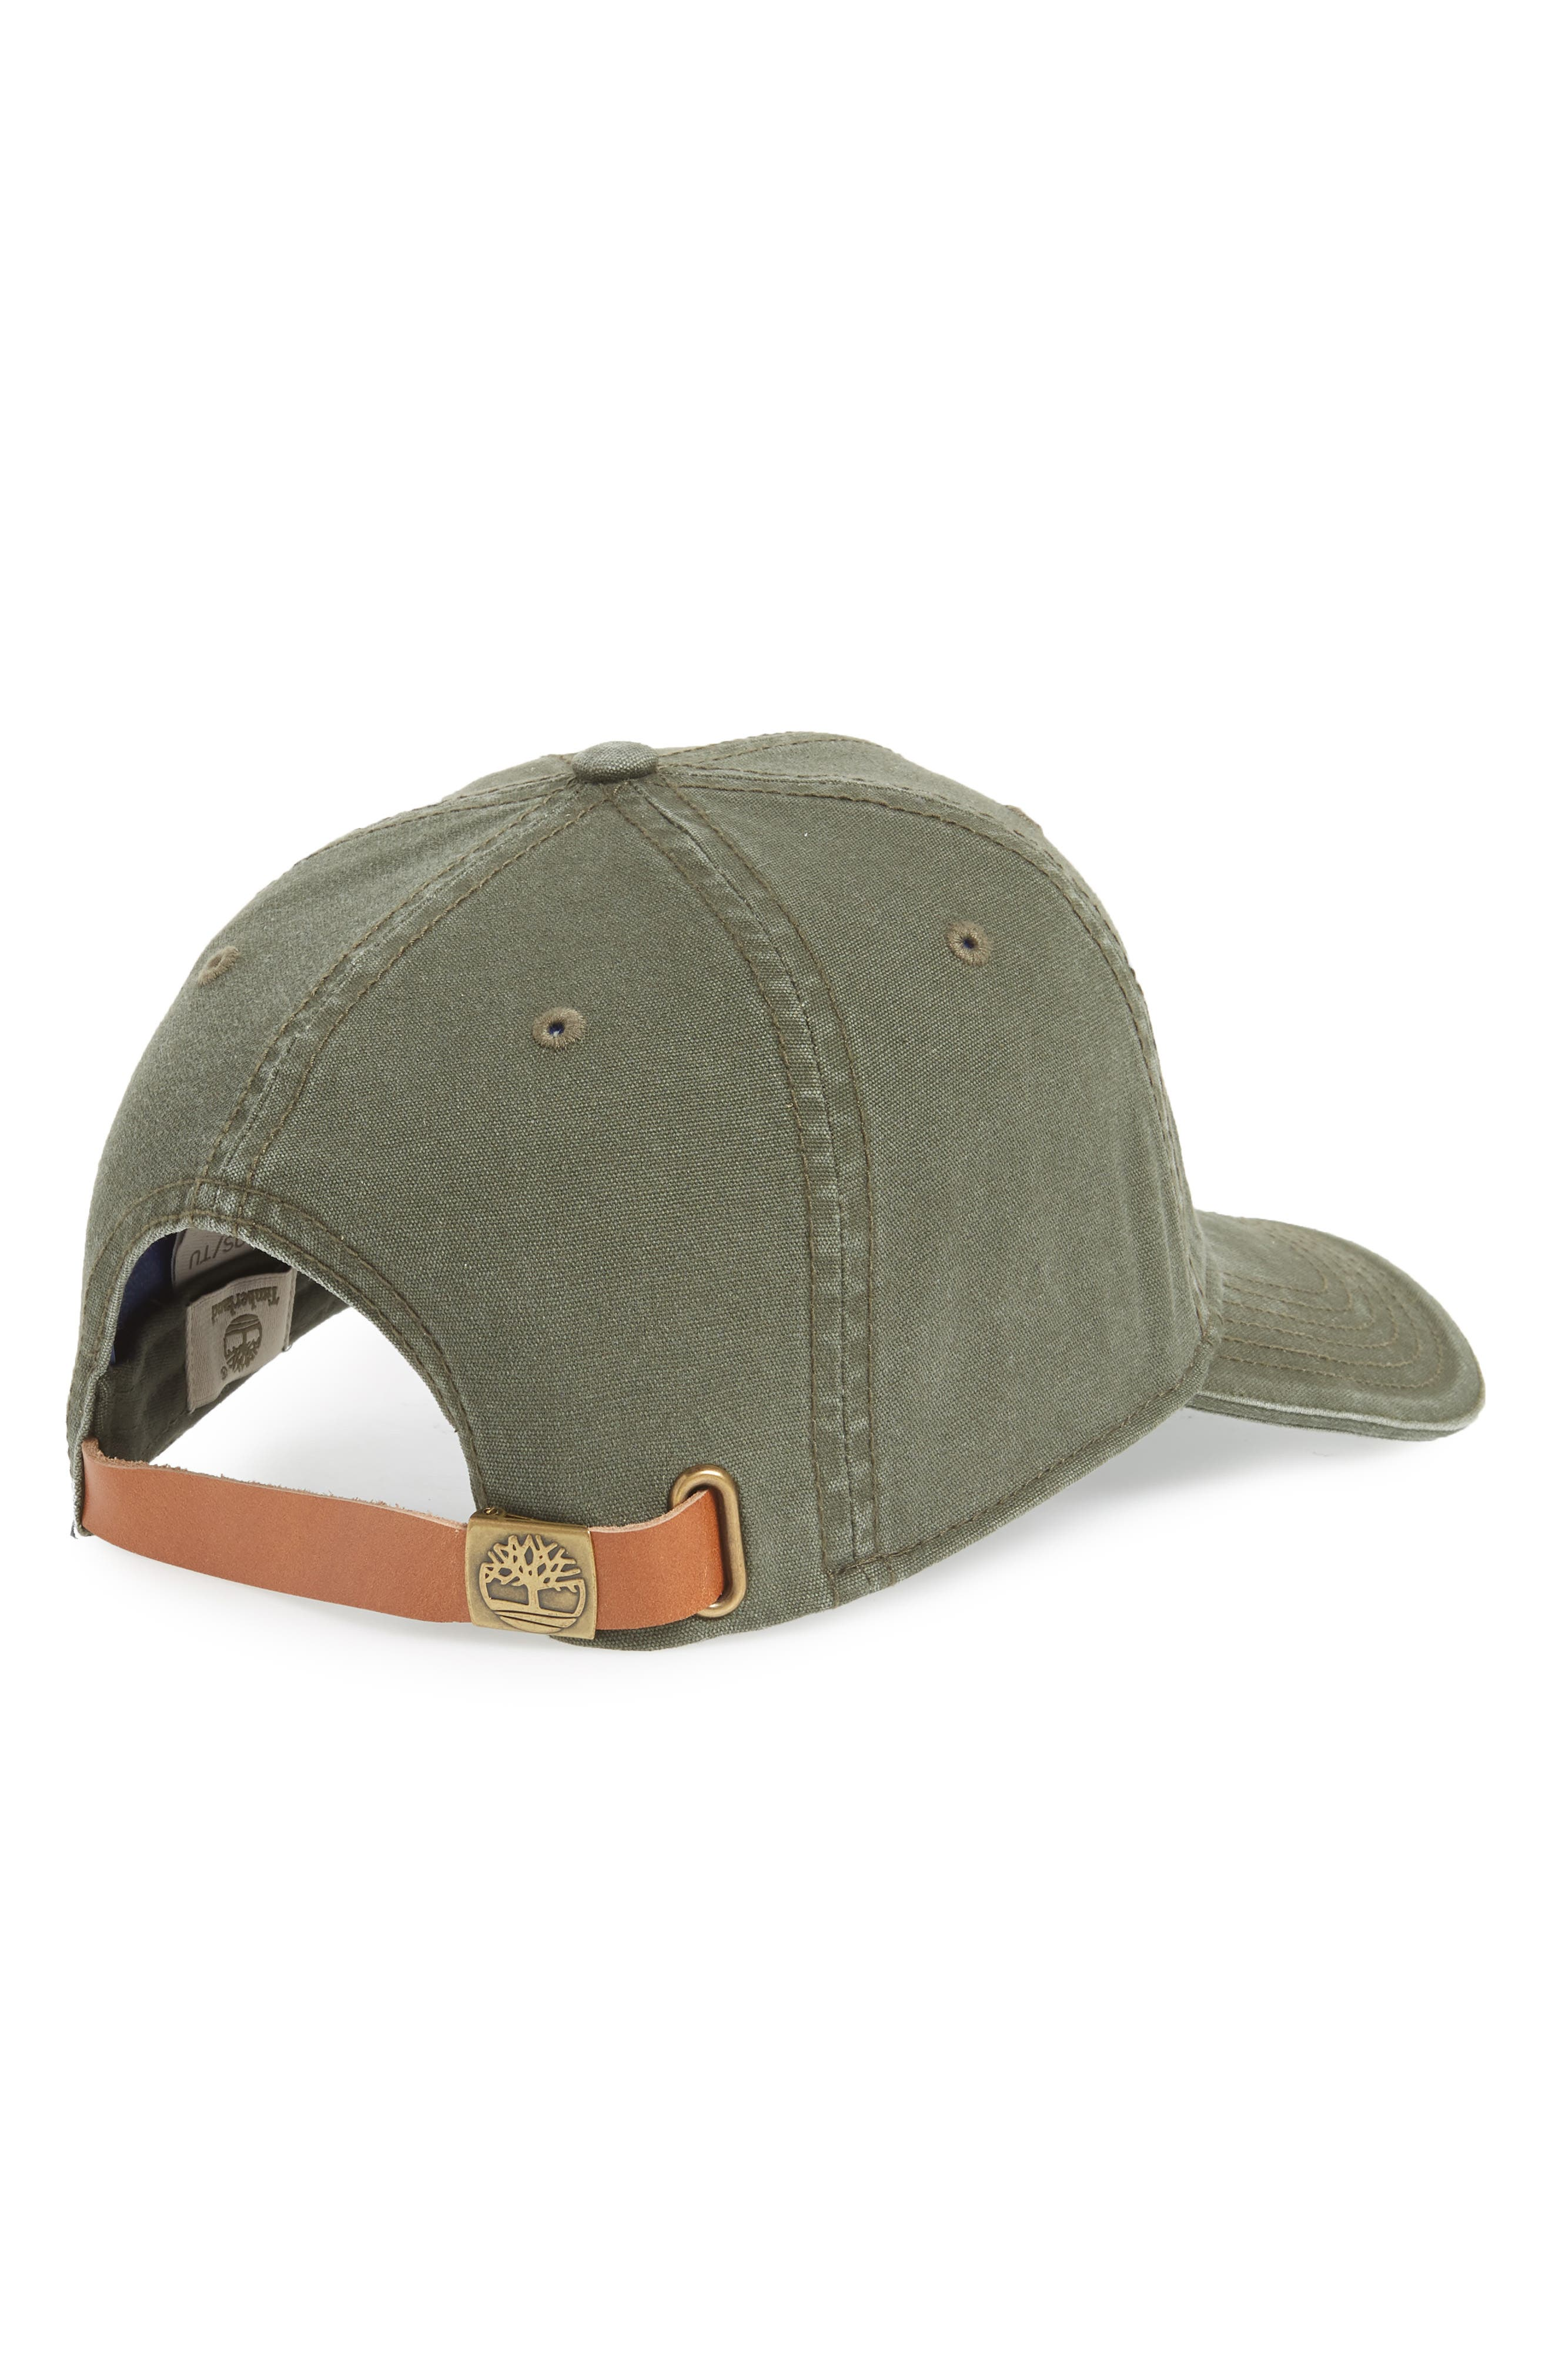 Southport Beach Baseball Cap,                             Alternate thumbnail 2, color,                             GRAPE LEAF